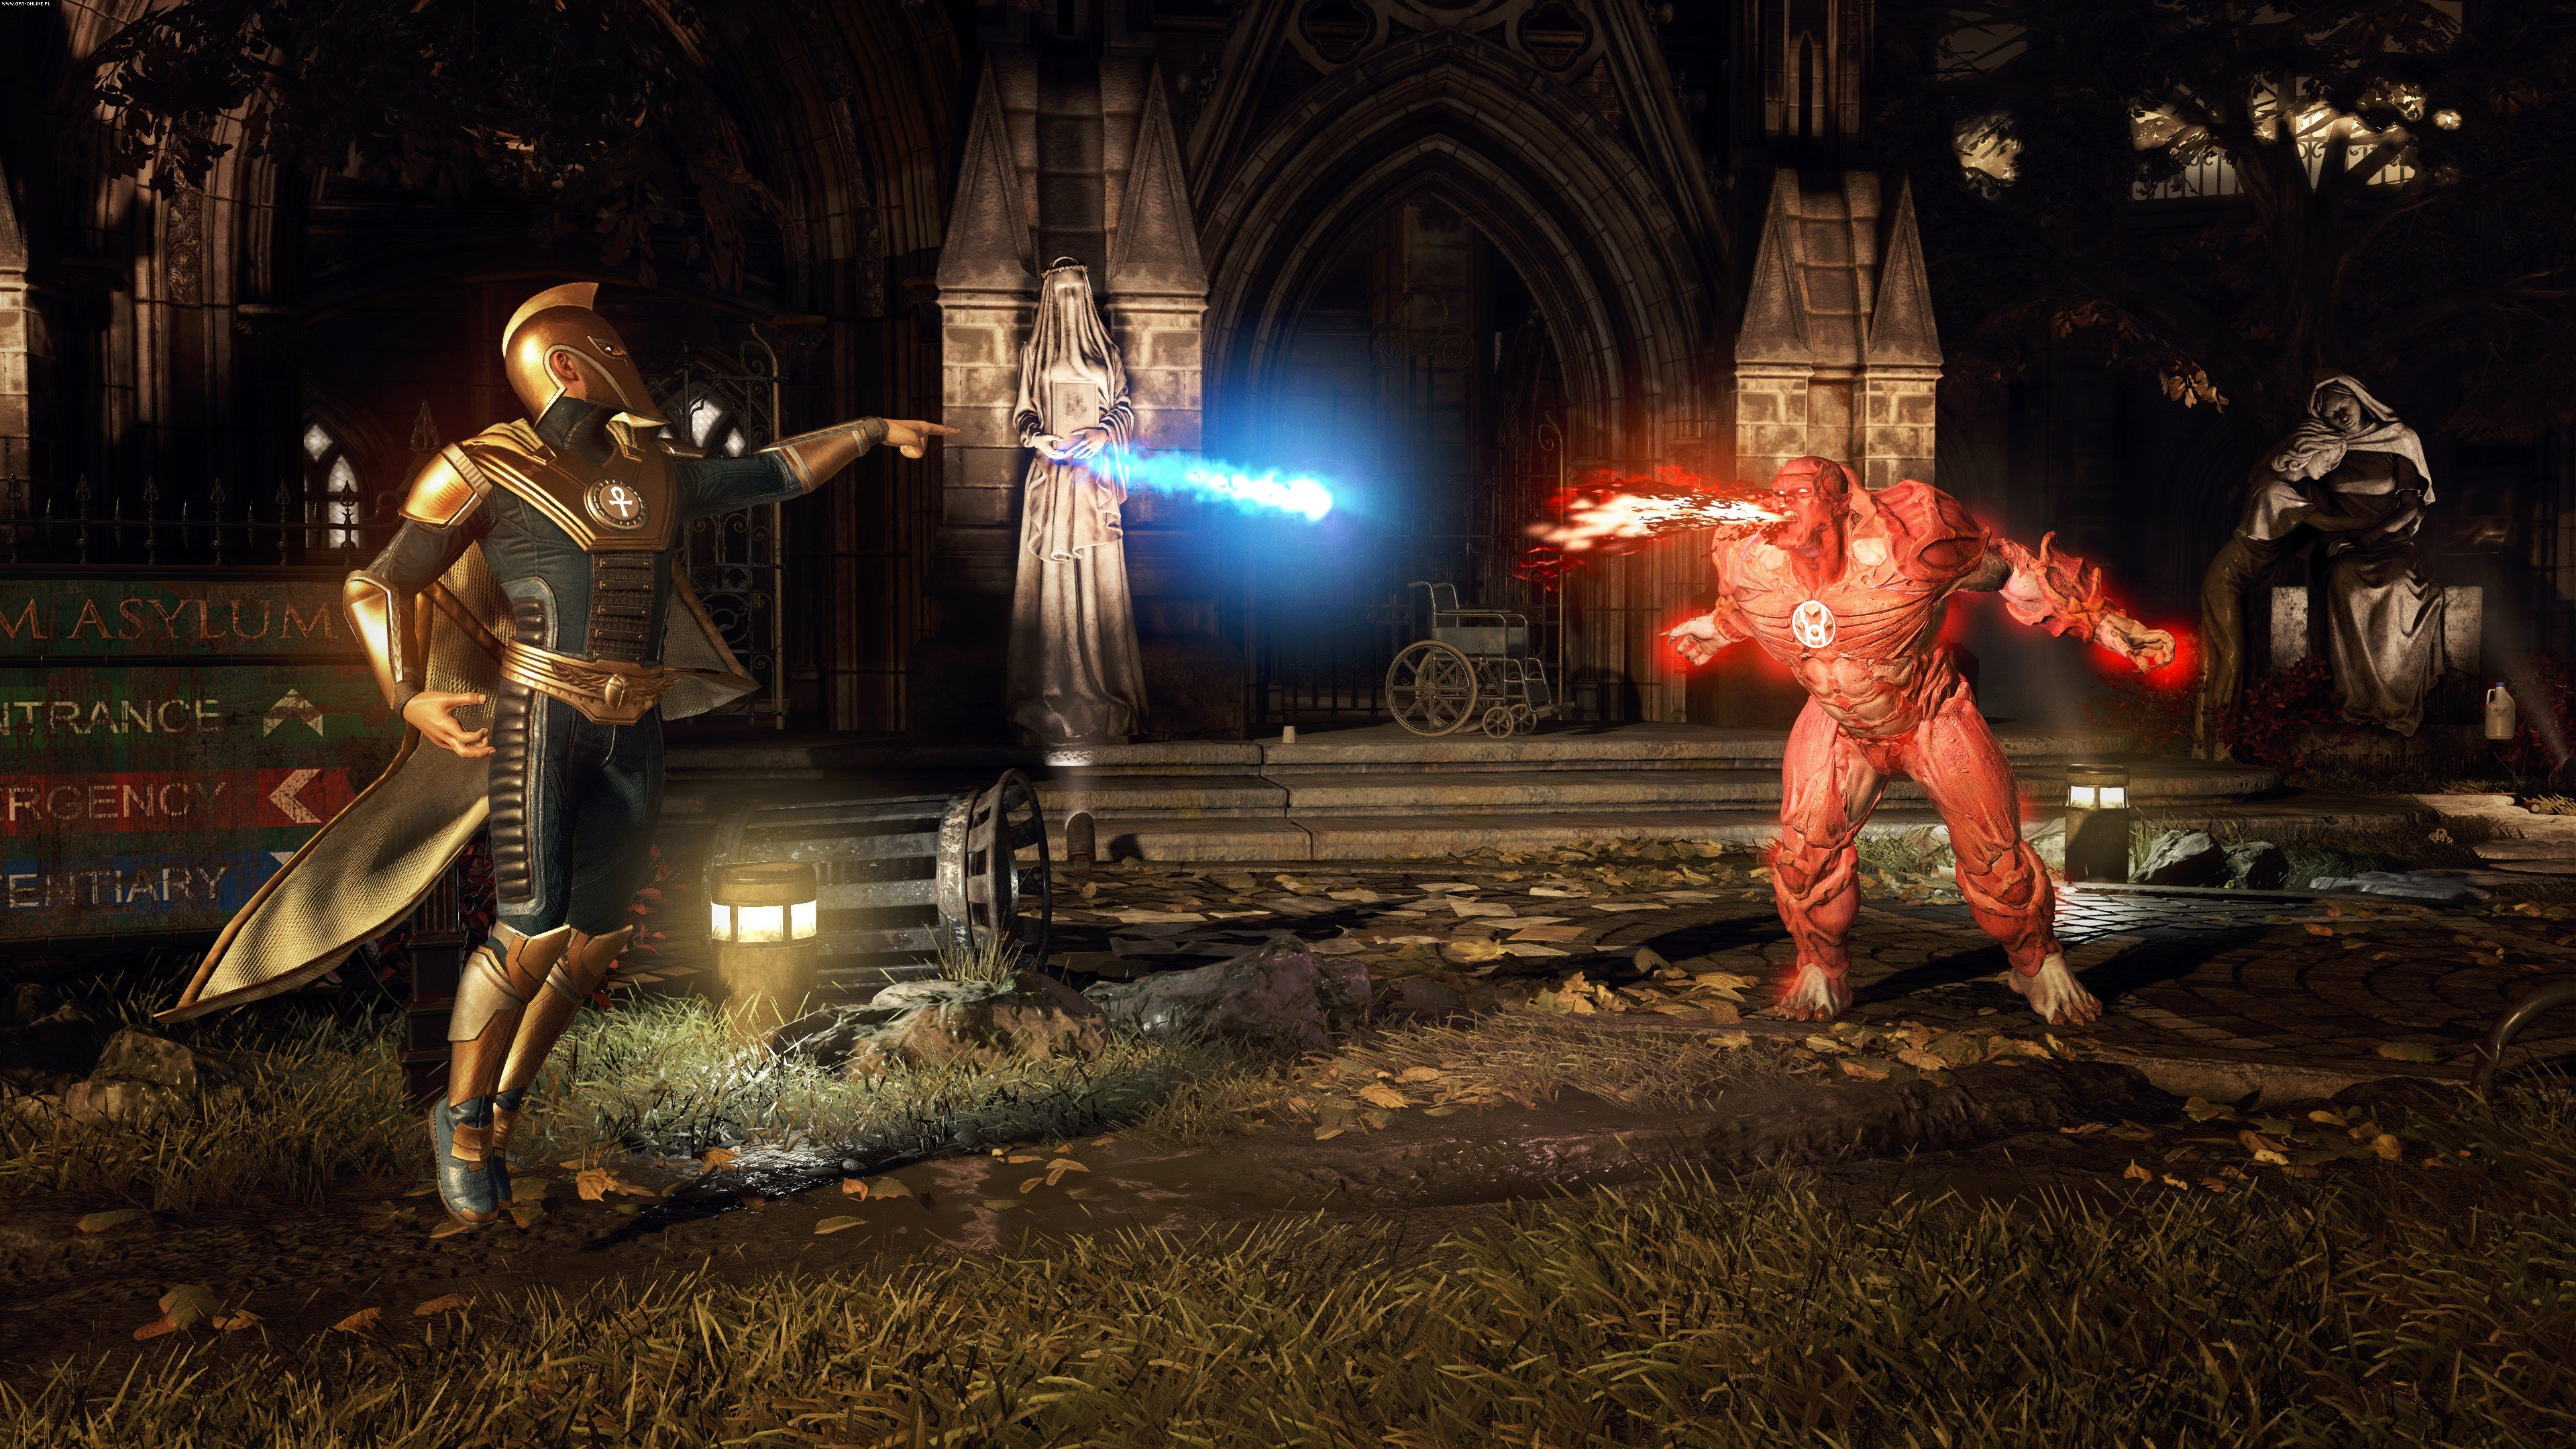 Injustice 2 PS4, XONE Gry Screen 3/24, NetherRealm Studios , Warner Bros. Interactive Entertainment